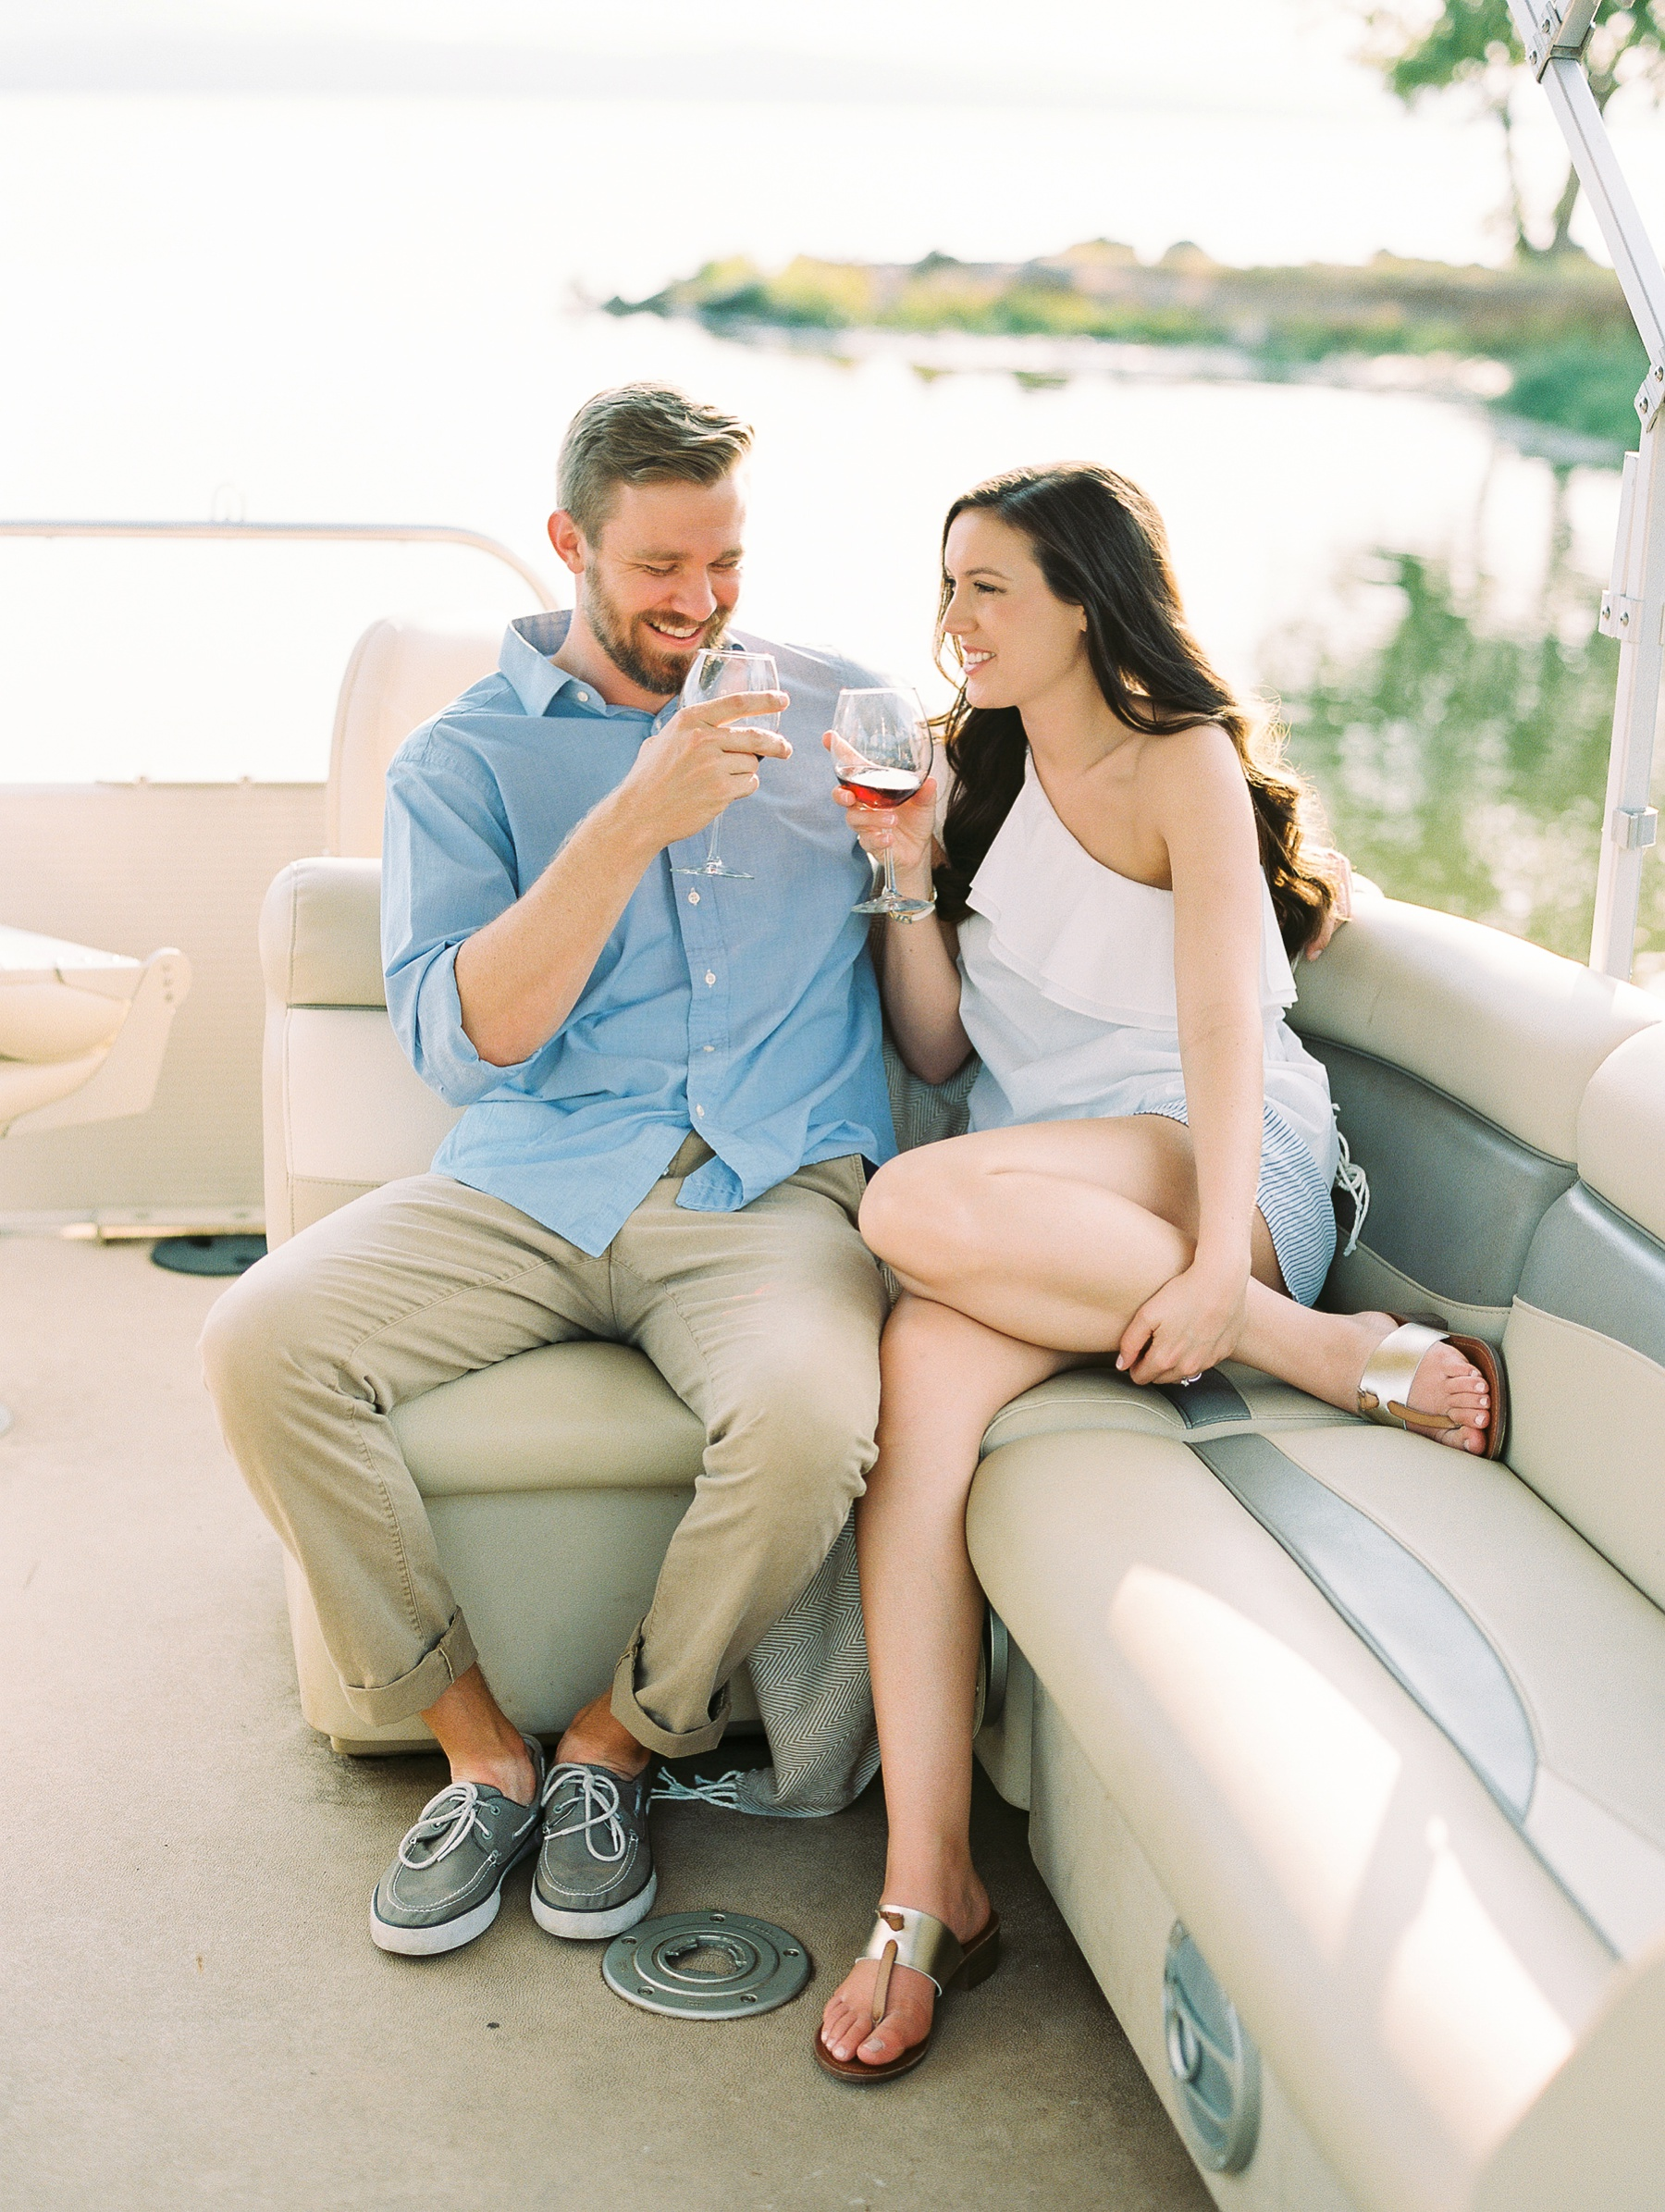 Nautical Boat Engagement Session Film Photographer_0549.jpg